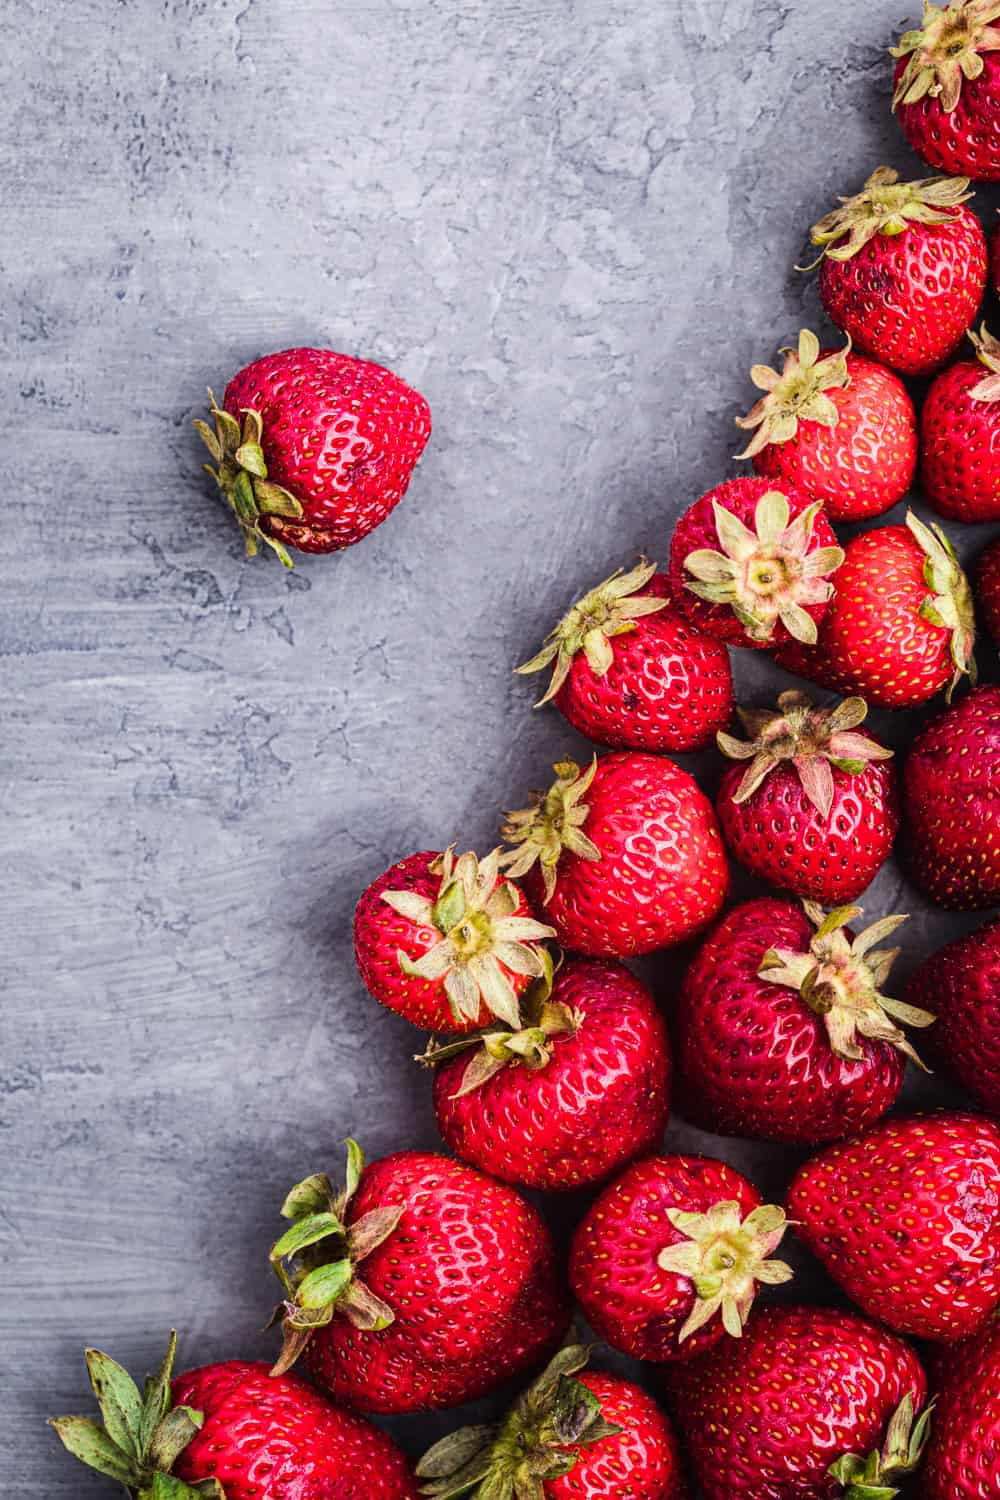 Ingredient shot of unstemmed strawberries, arranged on a grey background.